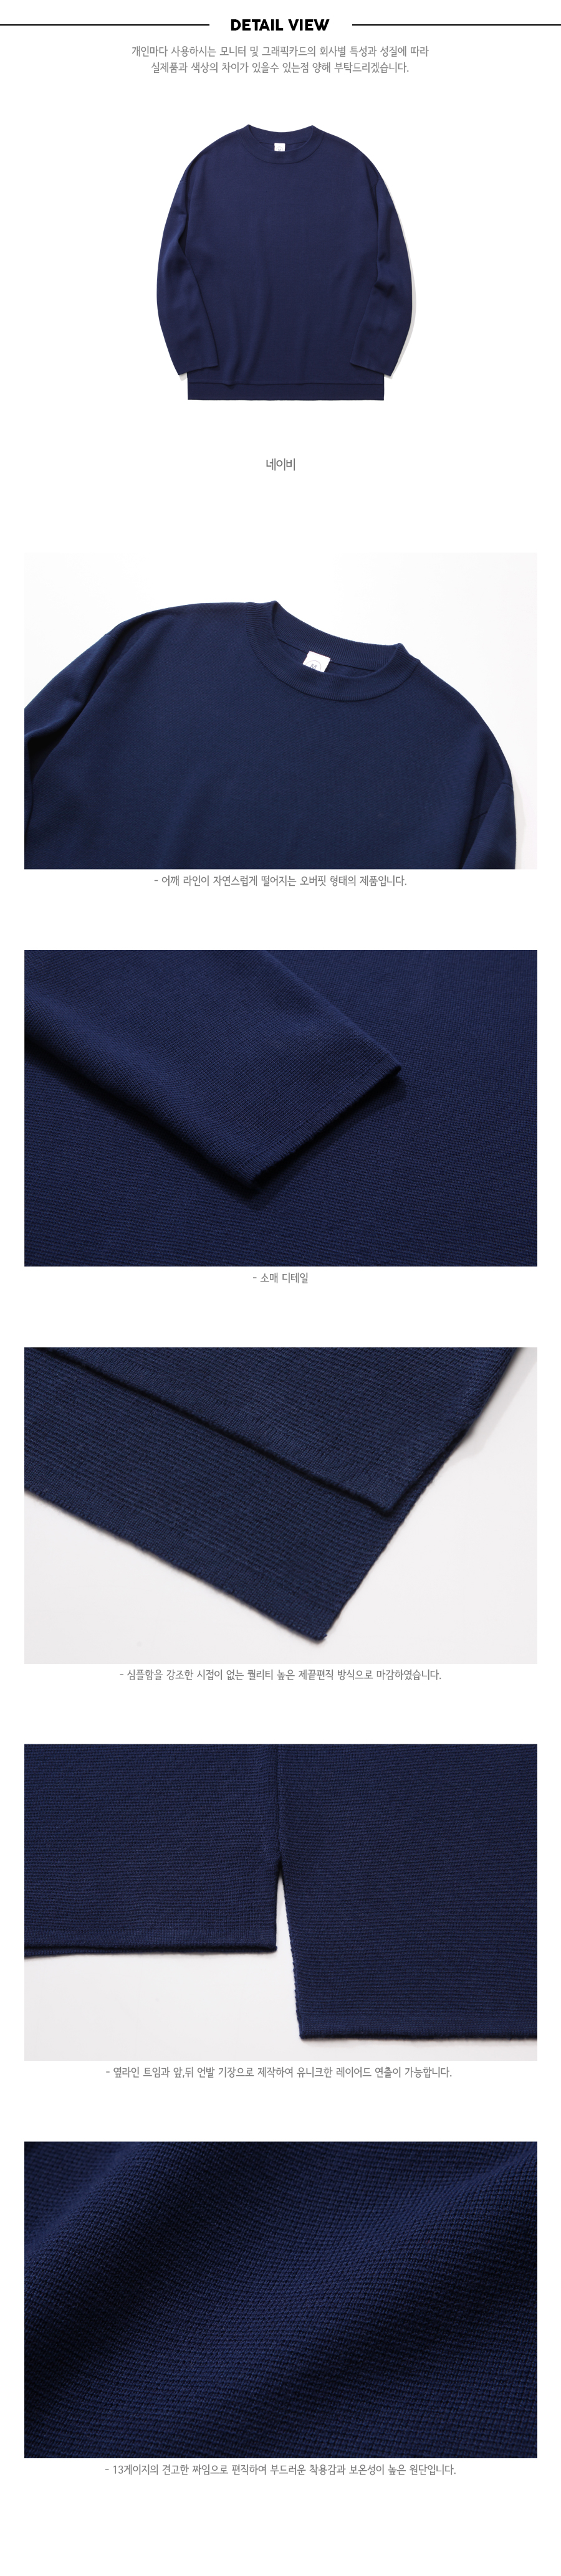 20181001_daily_knit_detail_navy_yh.jpg